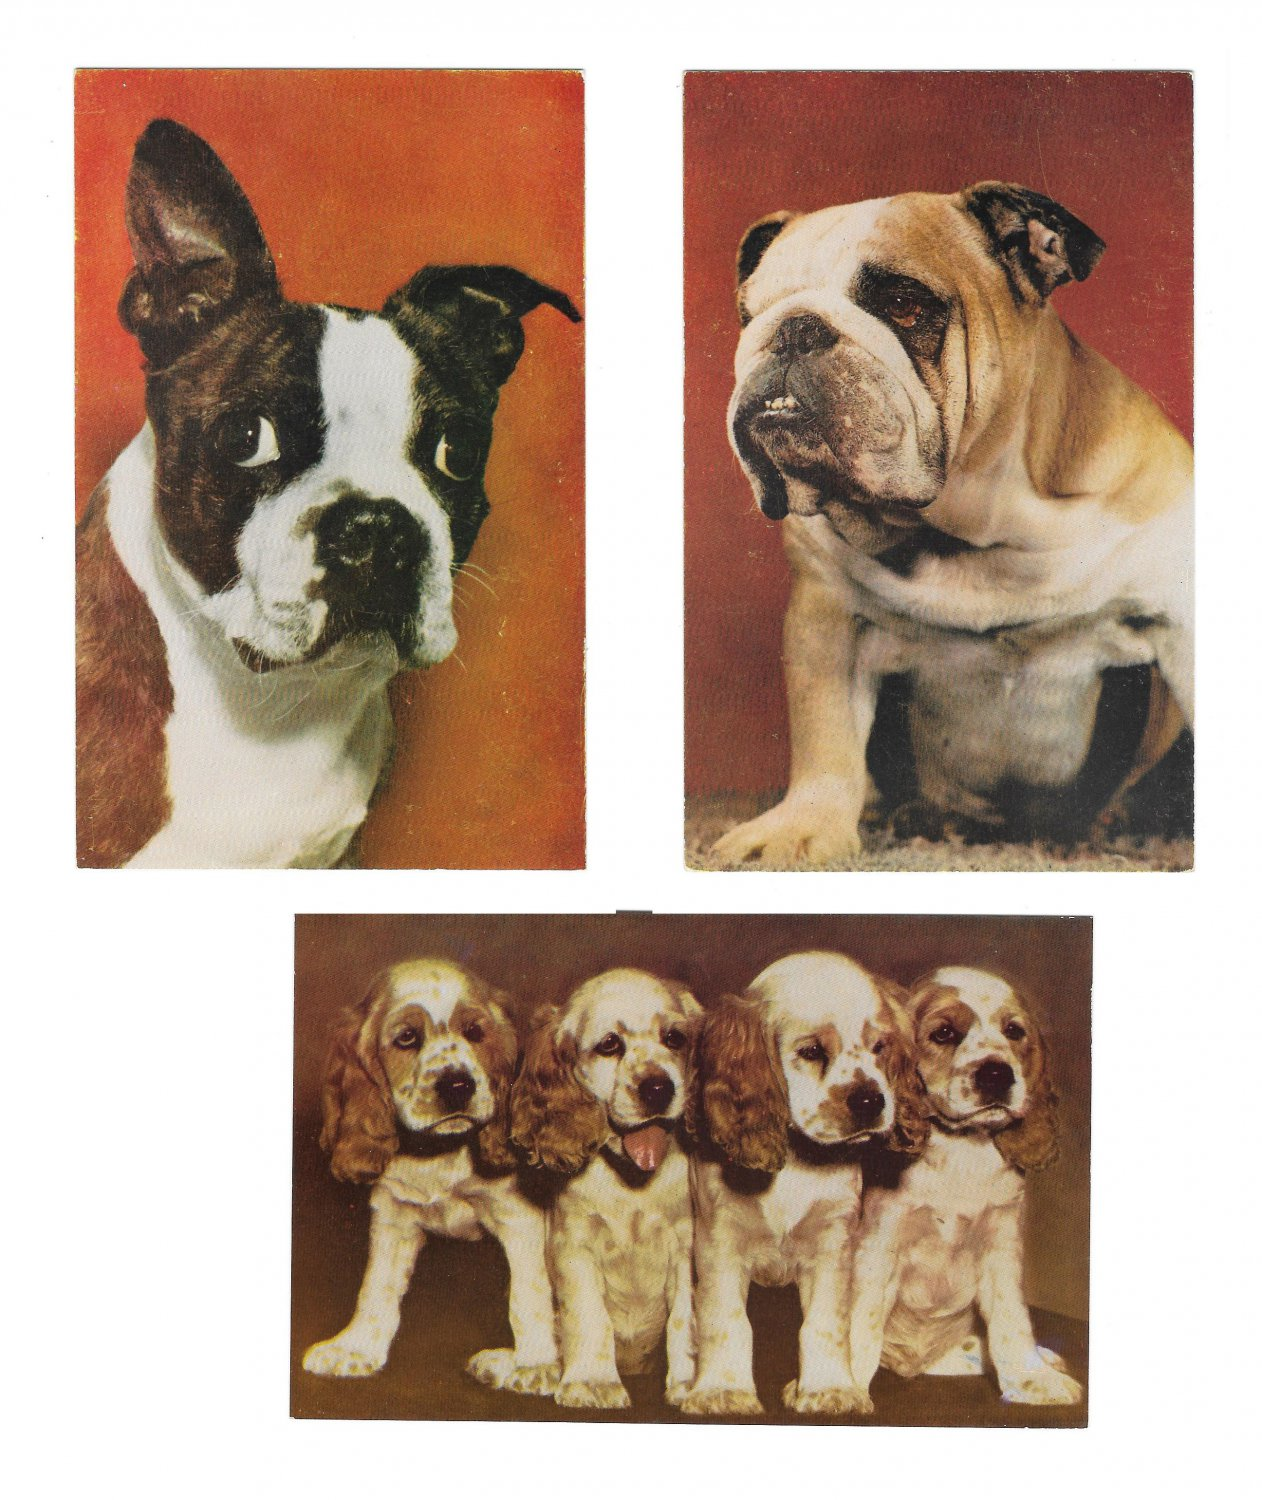 Dogs Cocker Spaniels Bulldog Boston Terrier 3 Mike Roberts Postcards